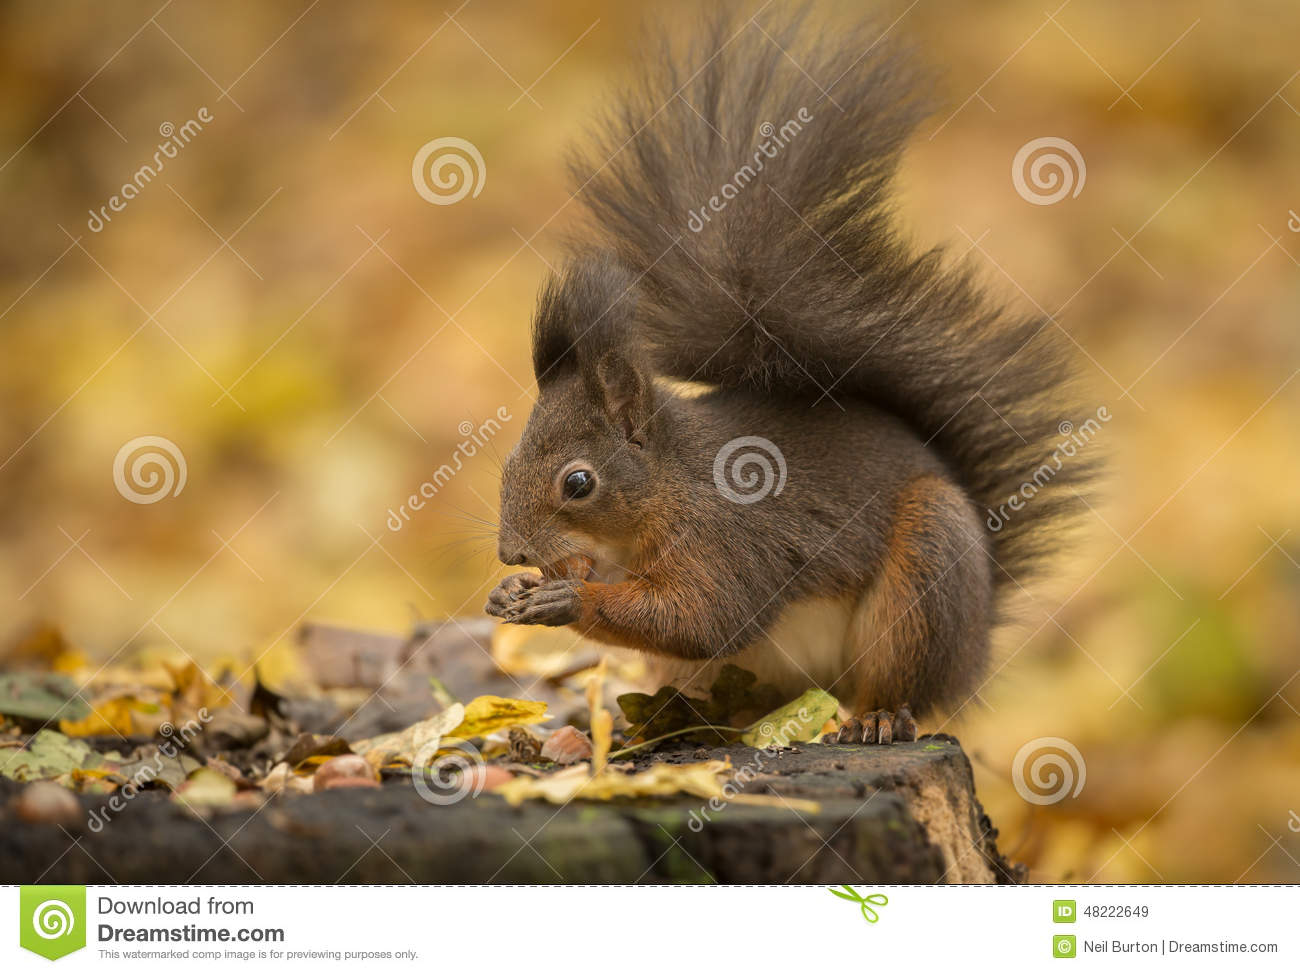 Red squirrel foraging in autumn leaves